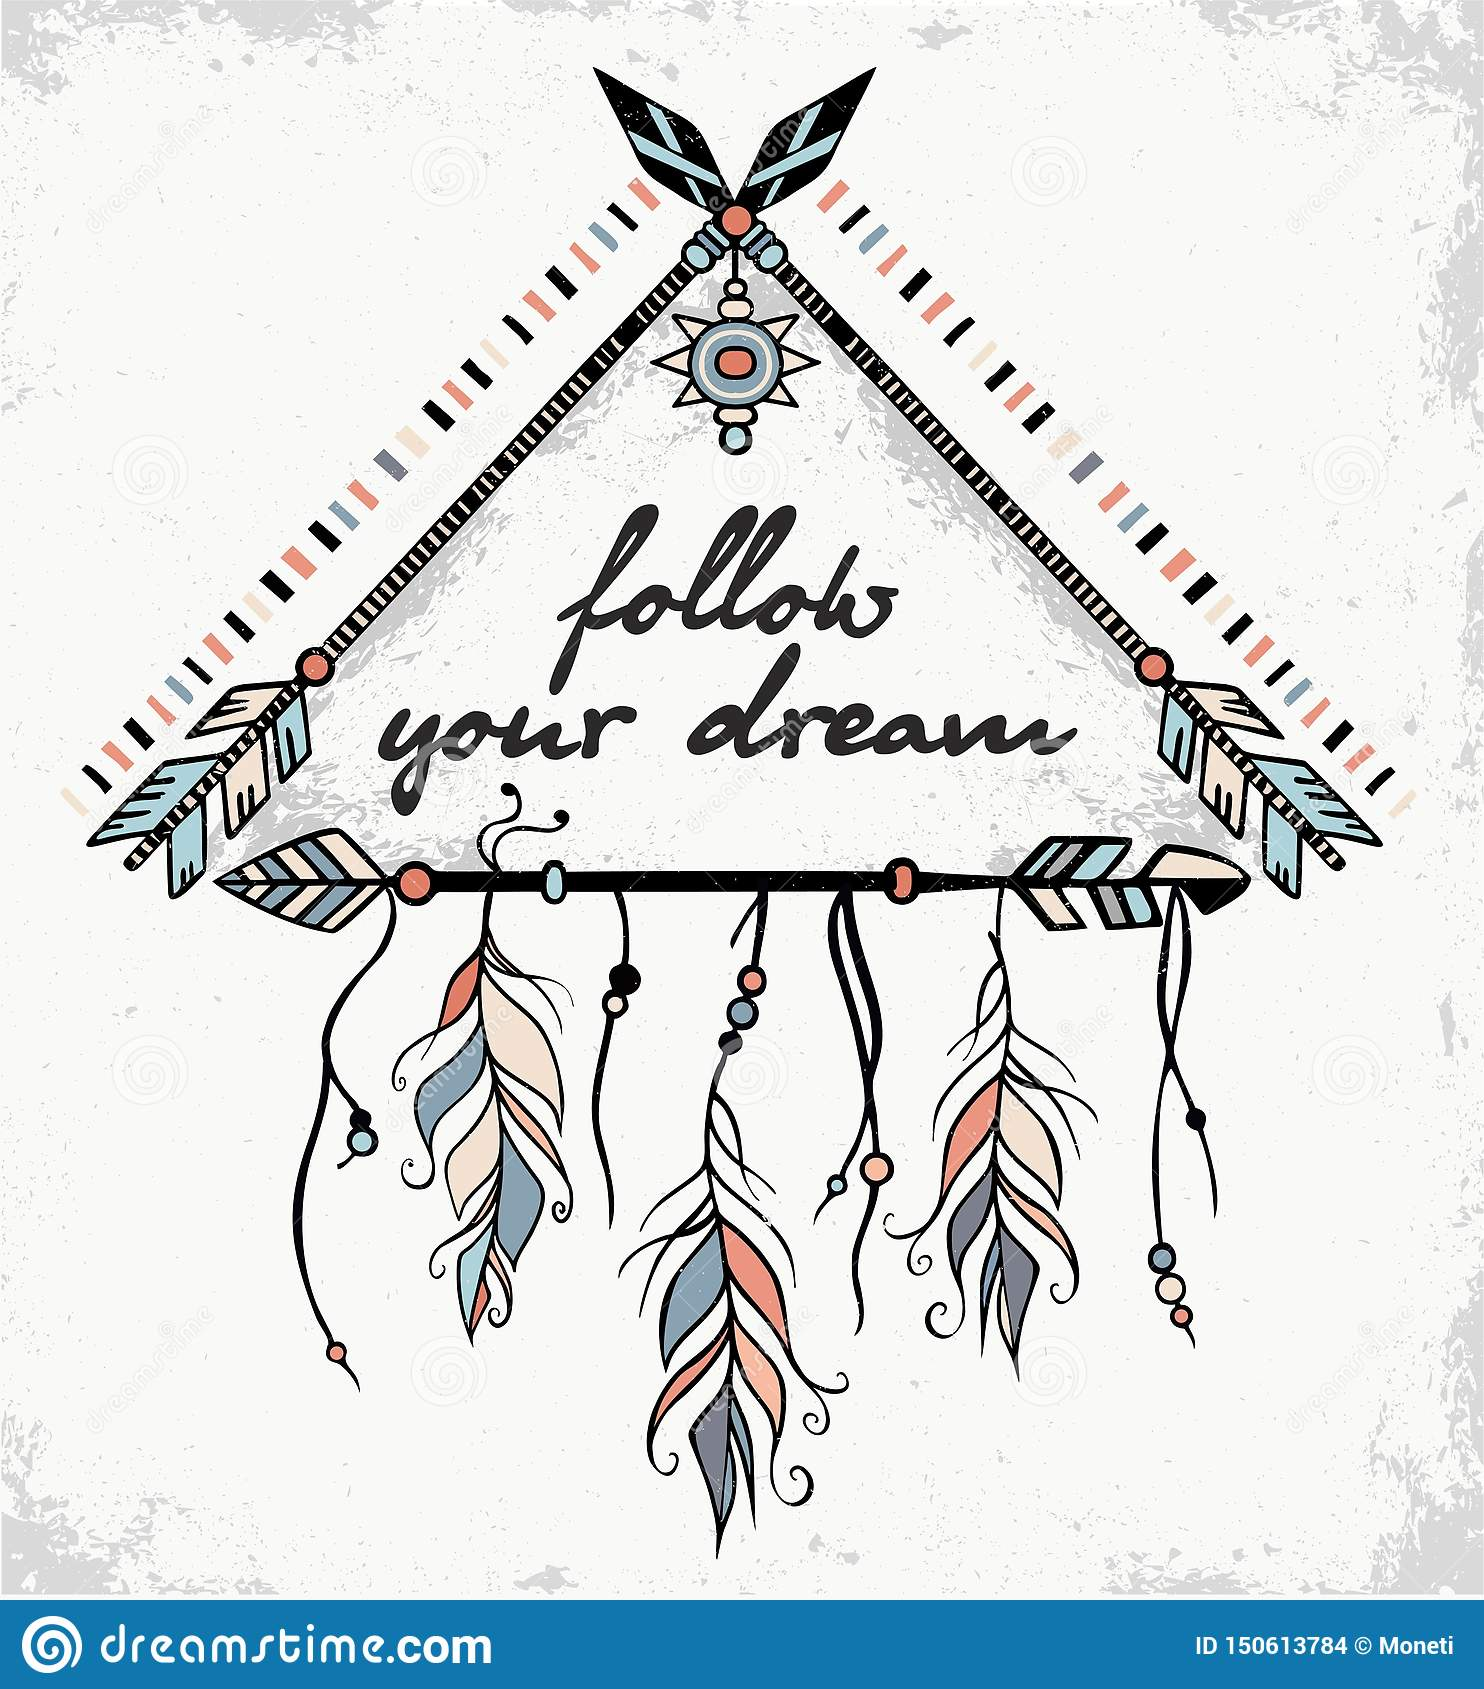 Follow your dreams embroidery design Inspirational Quote modern cross stitch Adventure Awaits Boho arrows Feather cross stitch pattern